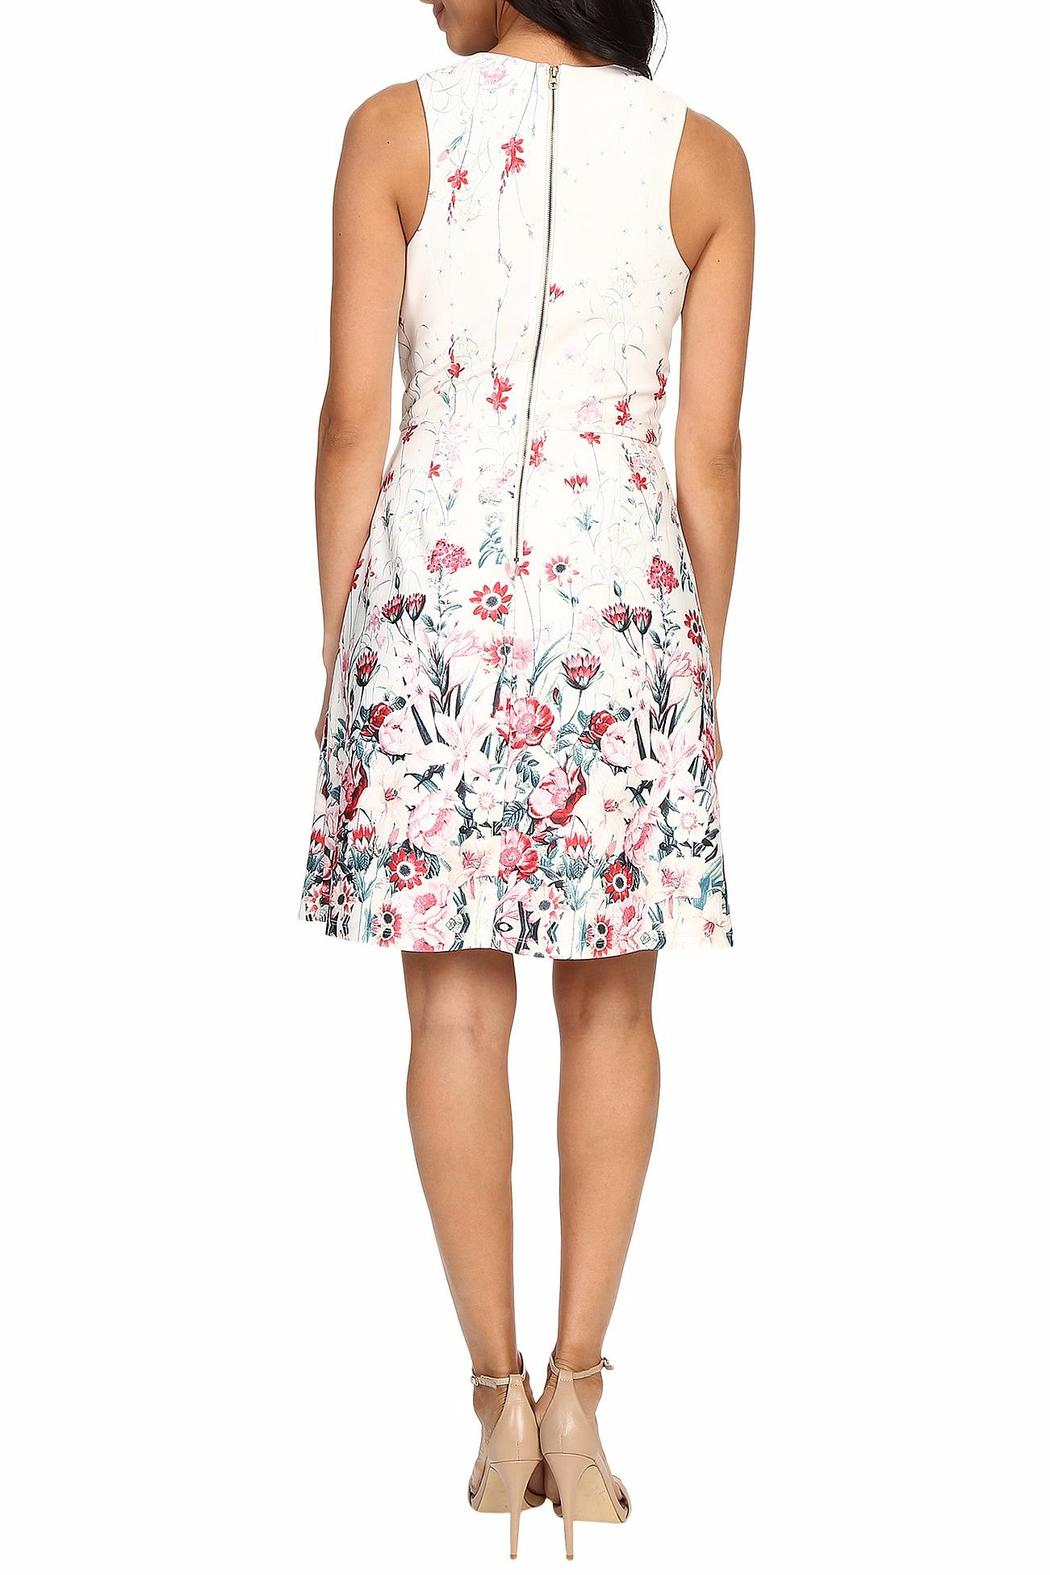 Kut from the Kloth Lana Floral Dress - Front Full Image